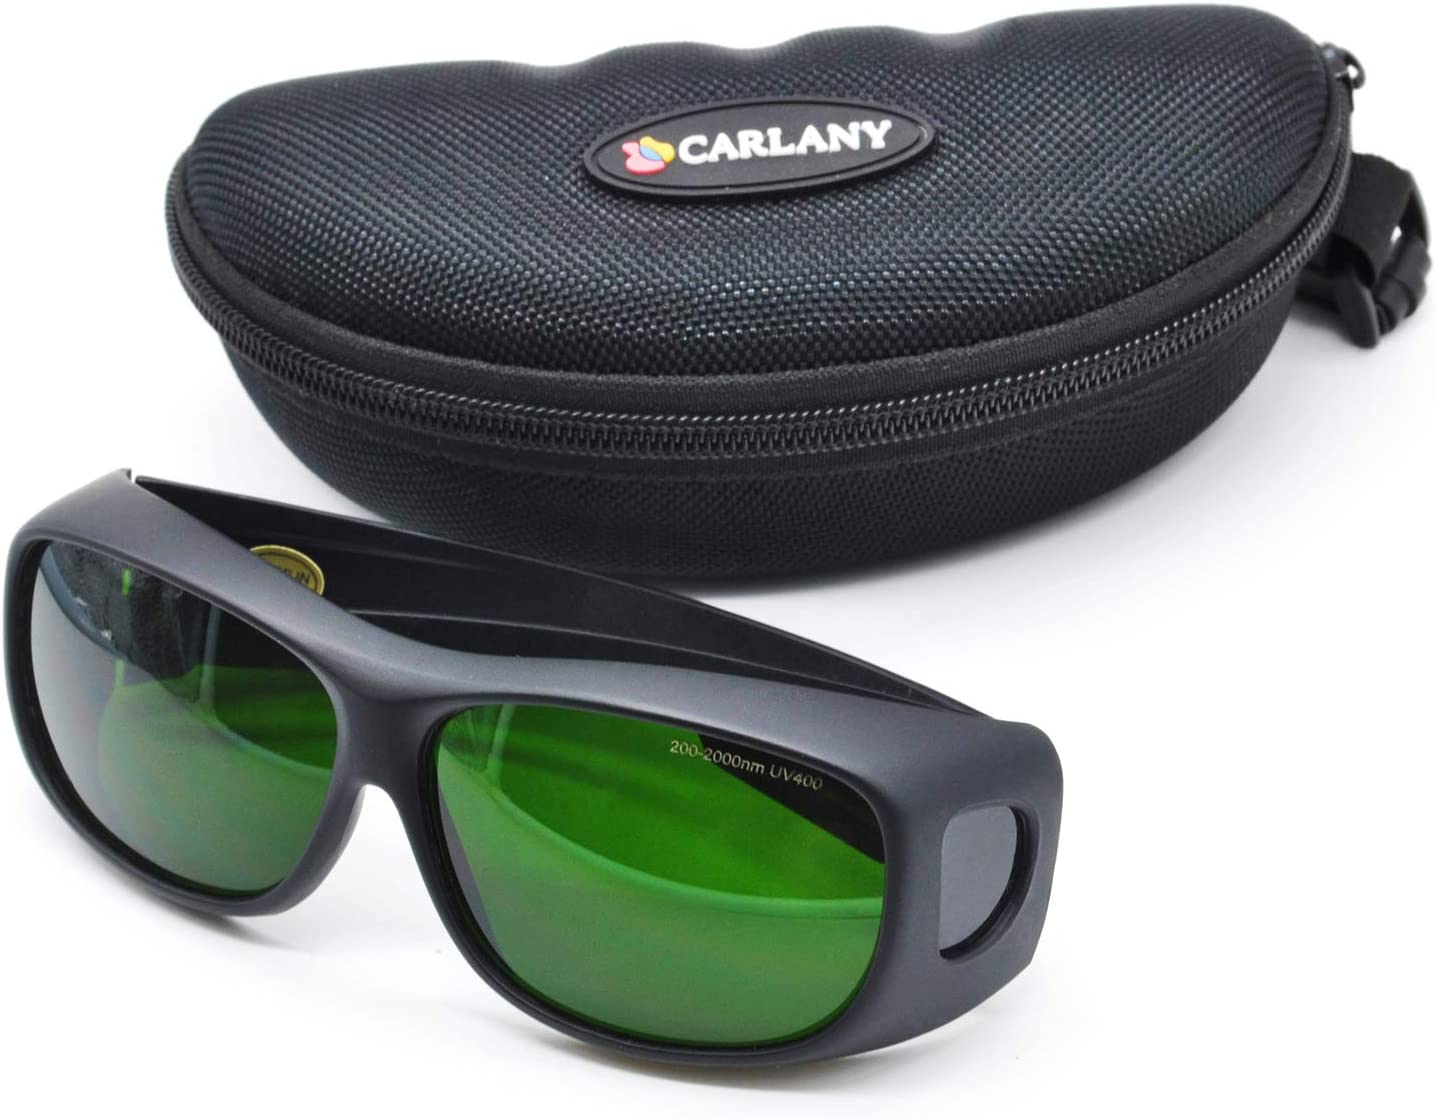 IPL Safety Goggles, Carlany 200-2000nm Typical Wavelength Laser eye Protection Glasses, Tanning Goggles, Eyewear, Eyepatch, Eyeshields for Operator & Patients in IPL, UV, Infrared LED Light Therapy